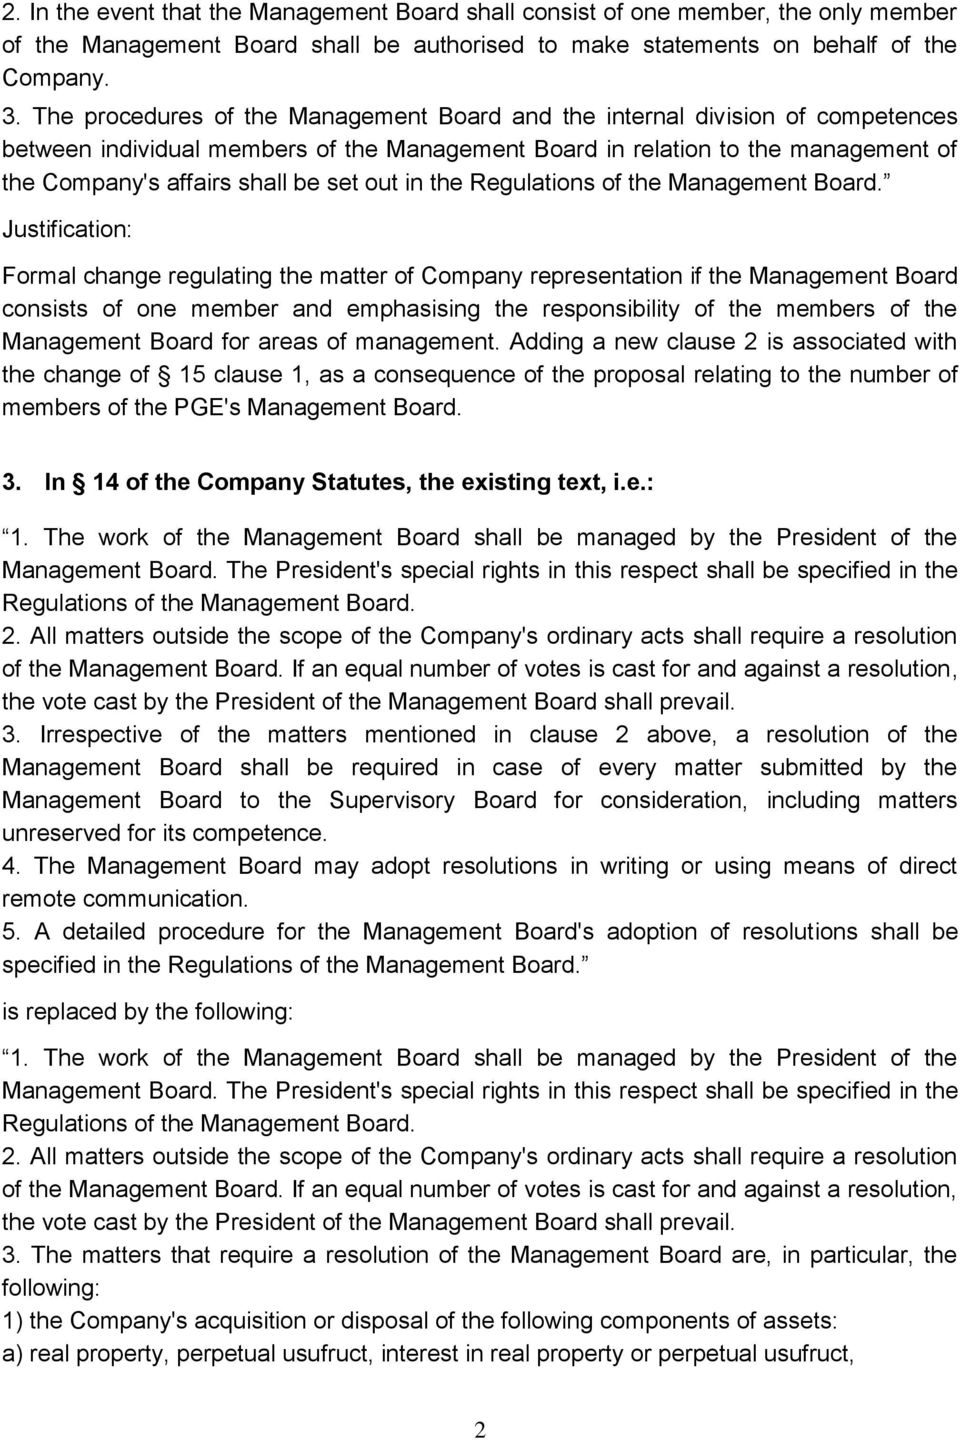 out in the Regulations of the Management Board.